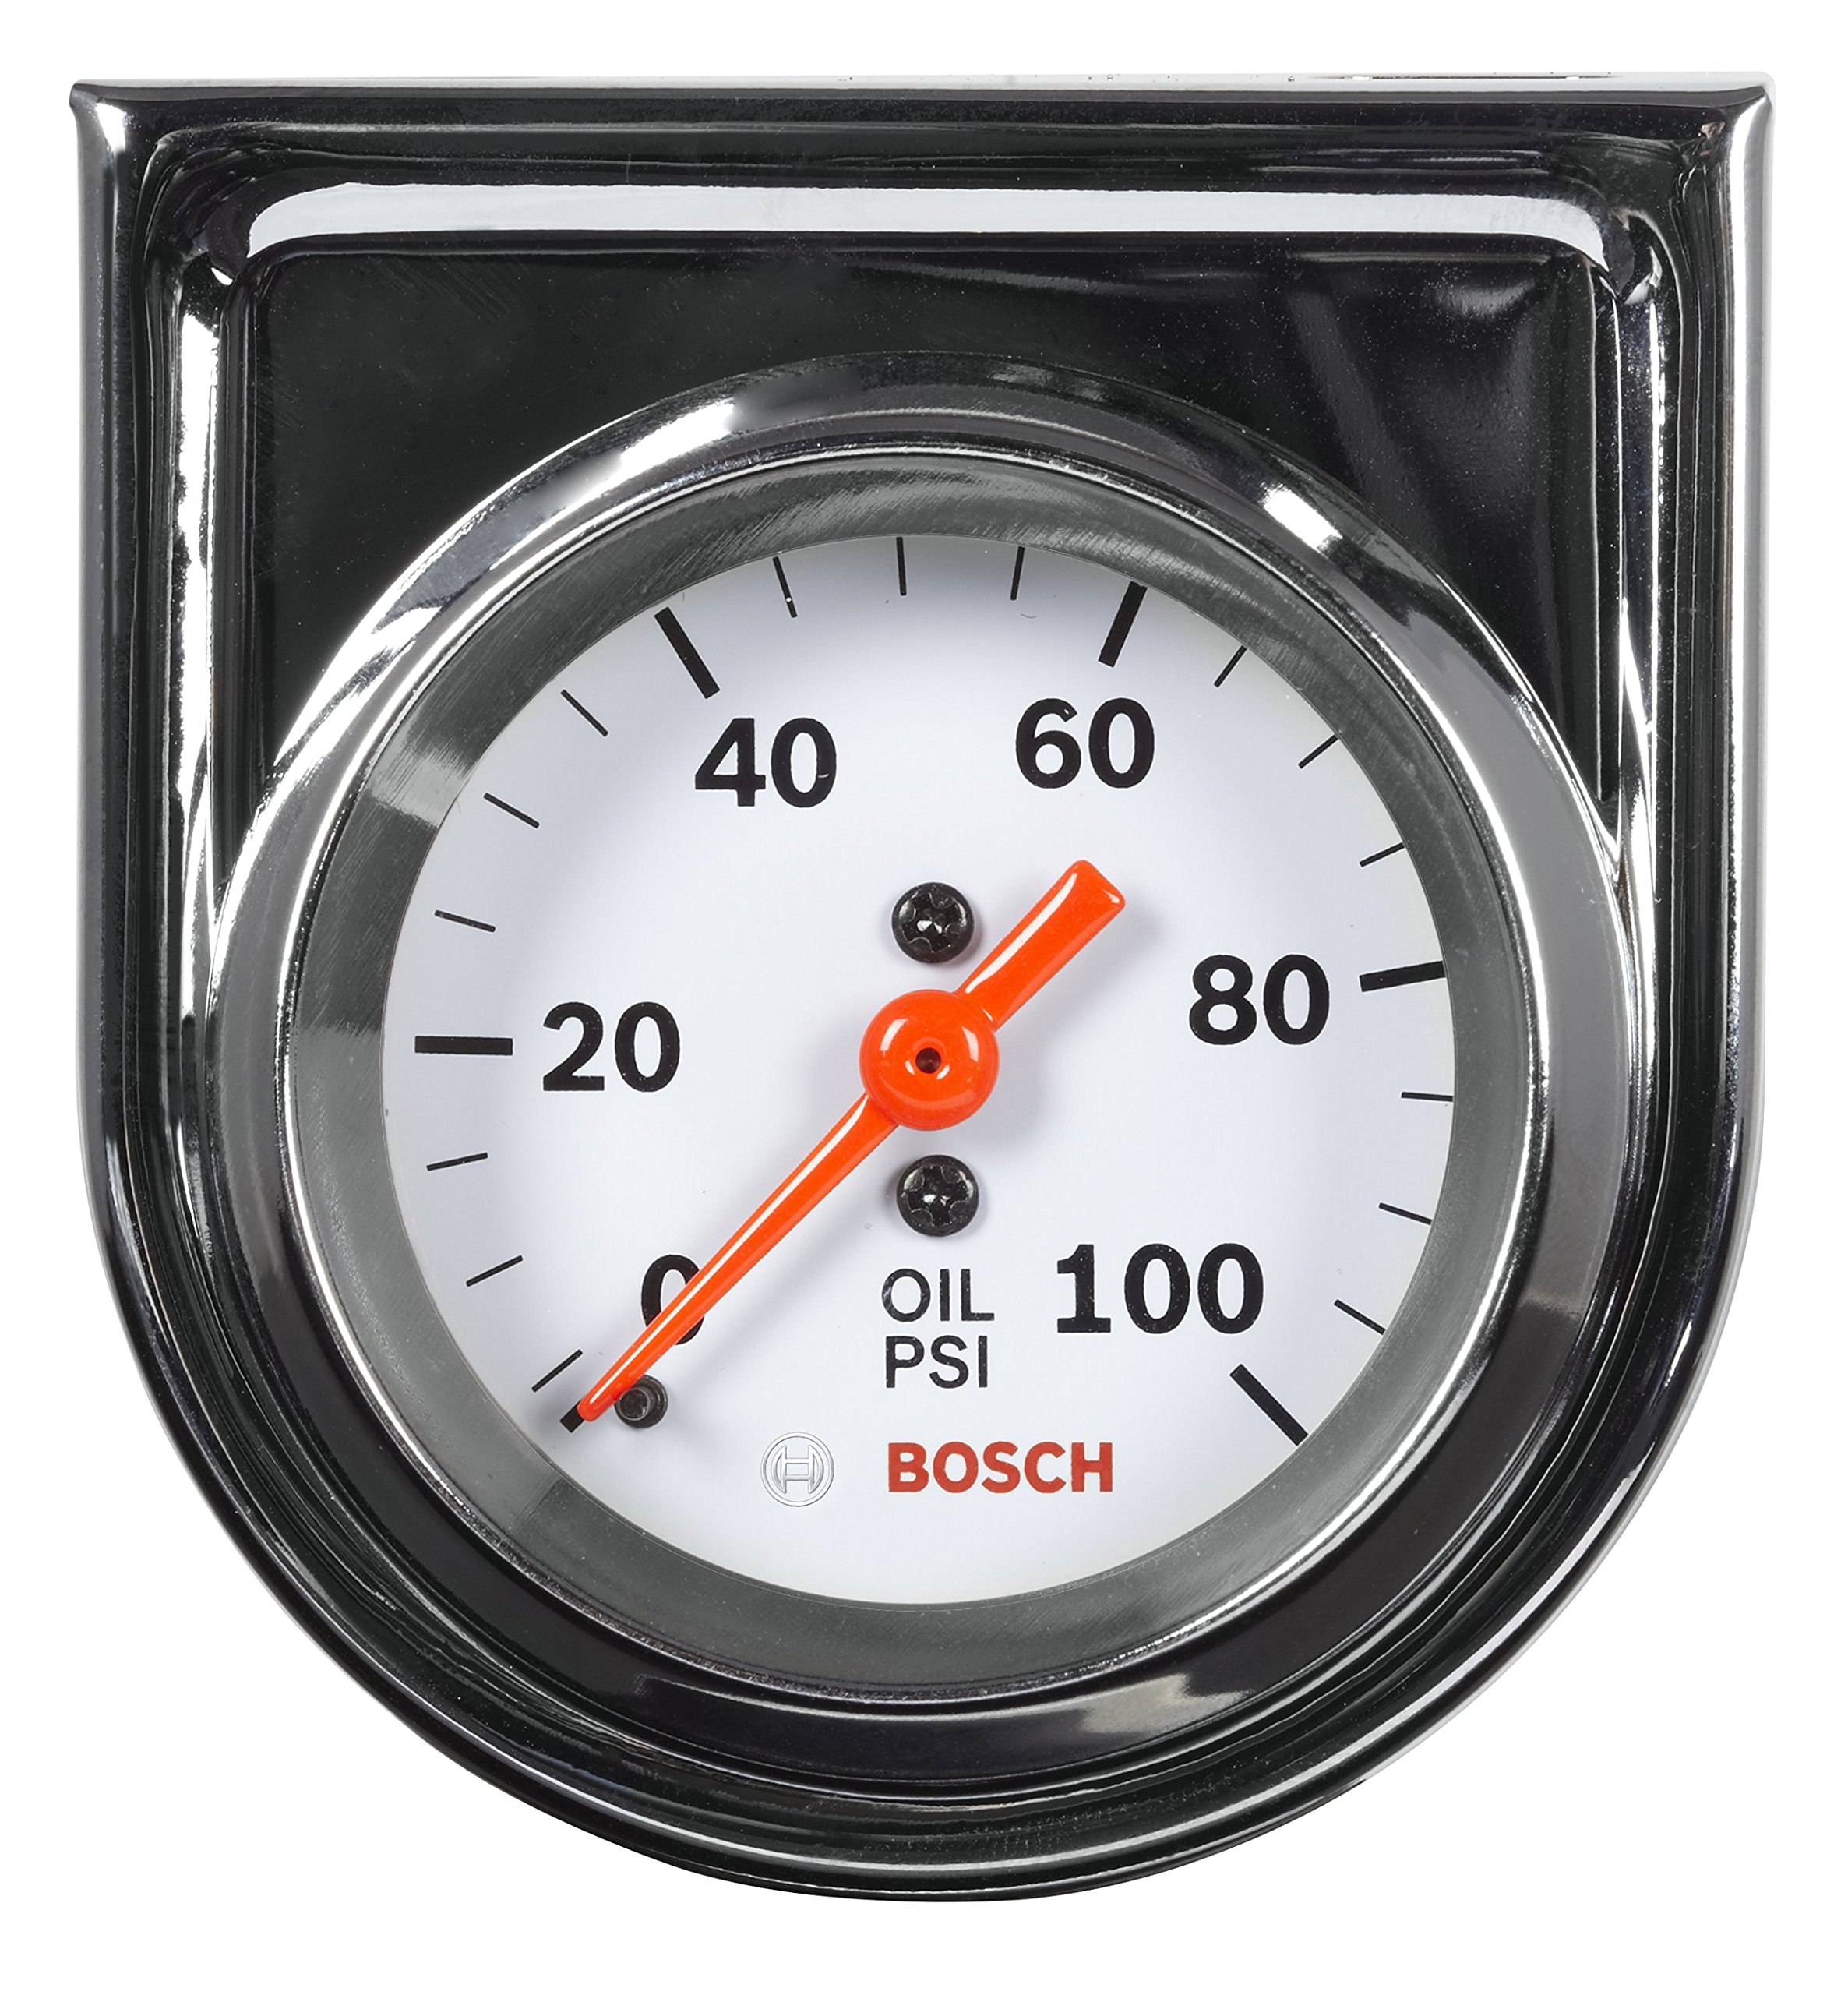 Bosch SP0F000044 Style Line 2'' Mechanical Oil Pressure Gauge (White Dial Face, Chrome Bezel) by Bosch Automotive